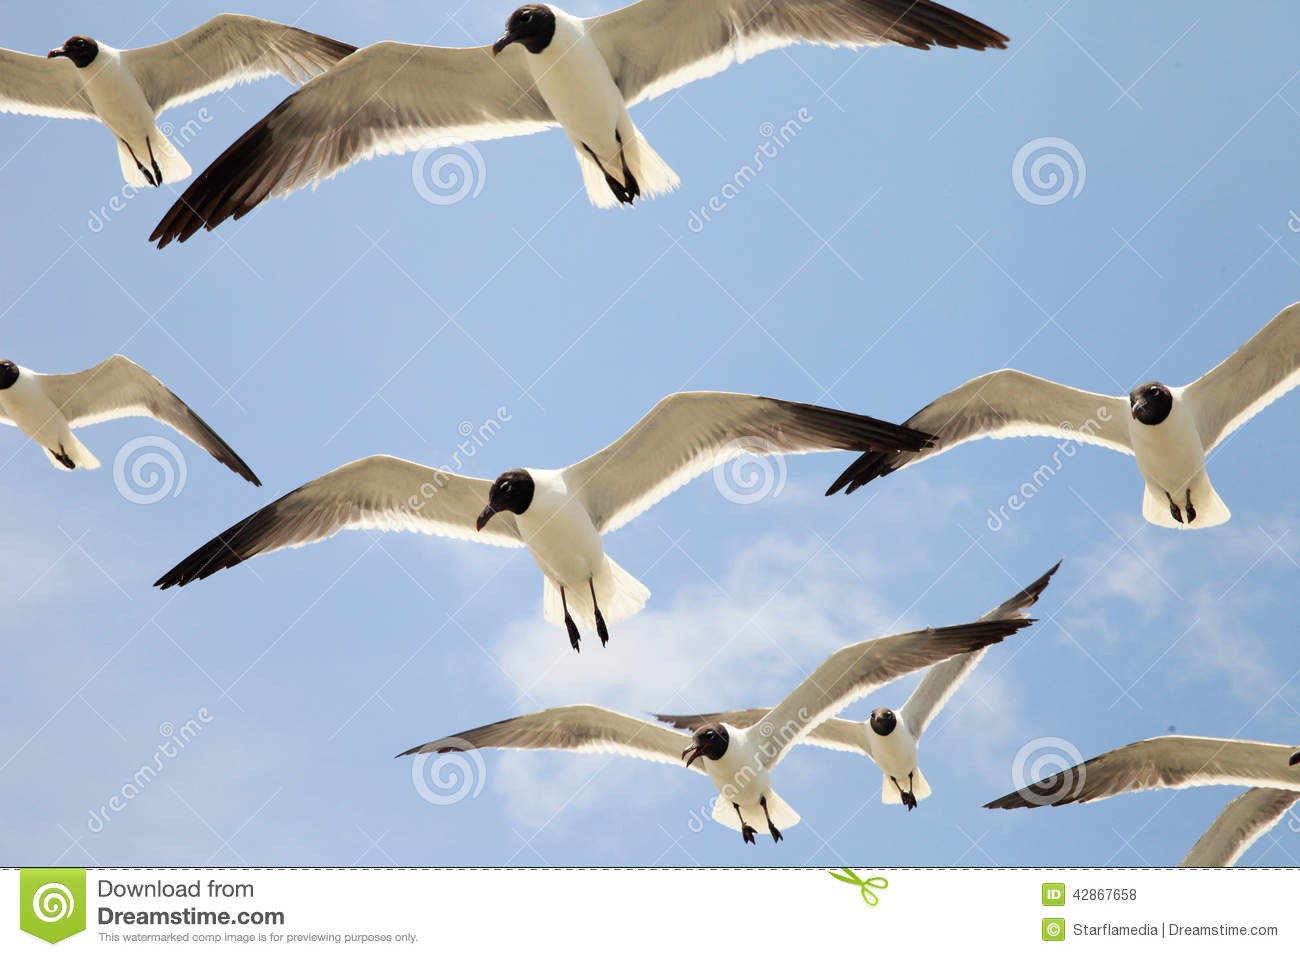 Flying Birds Free Stock Photos Download 3 416 Free Stock: Group Of Seagulls Stock Photo. Image Of Grace, Group